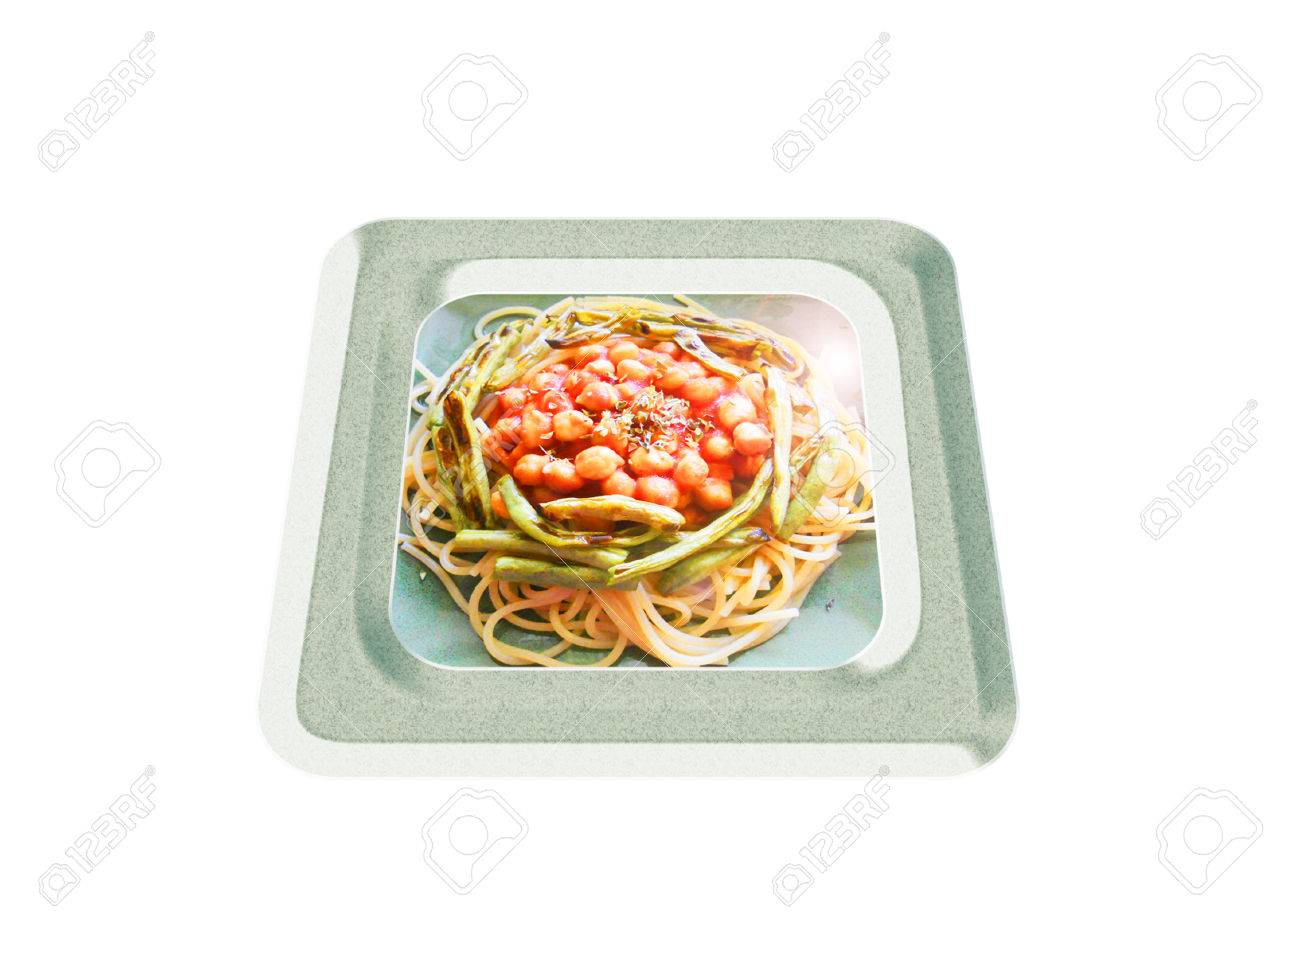 Spaghetti with chickpea and green bean. Composition Foto de archivo - 36007183